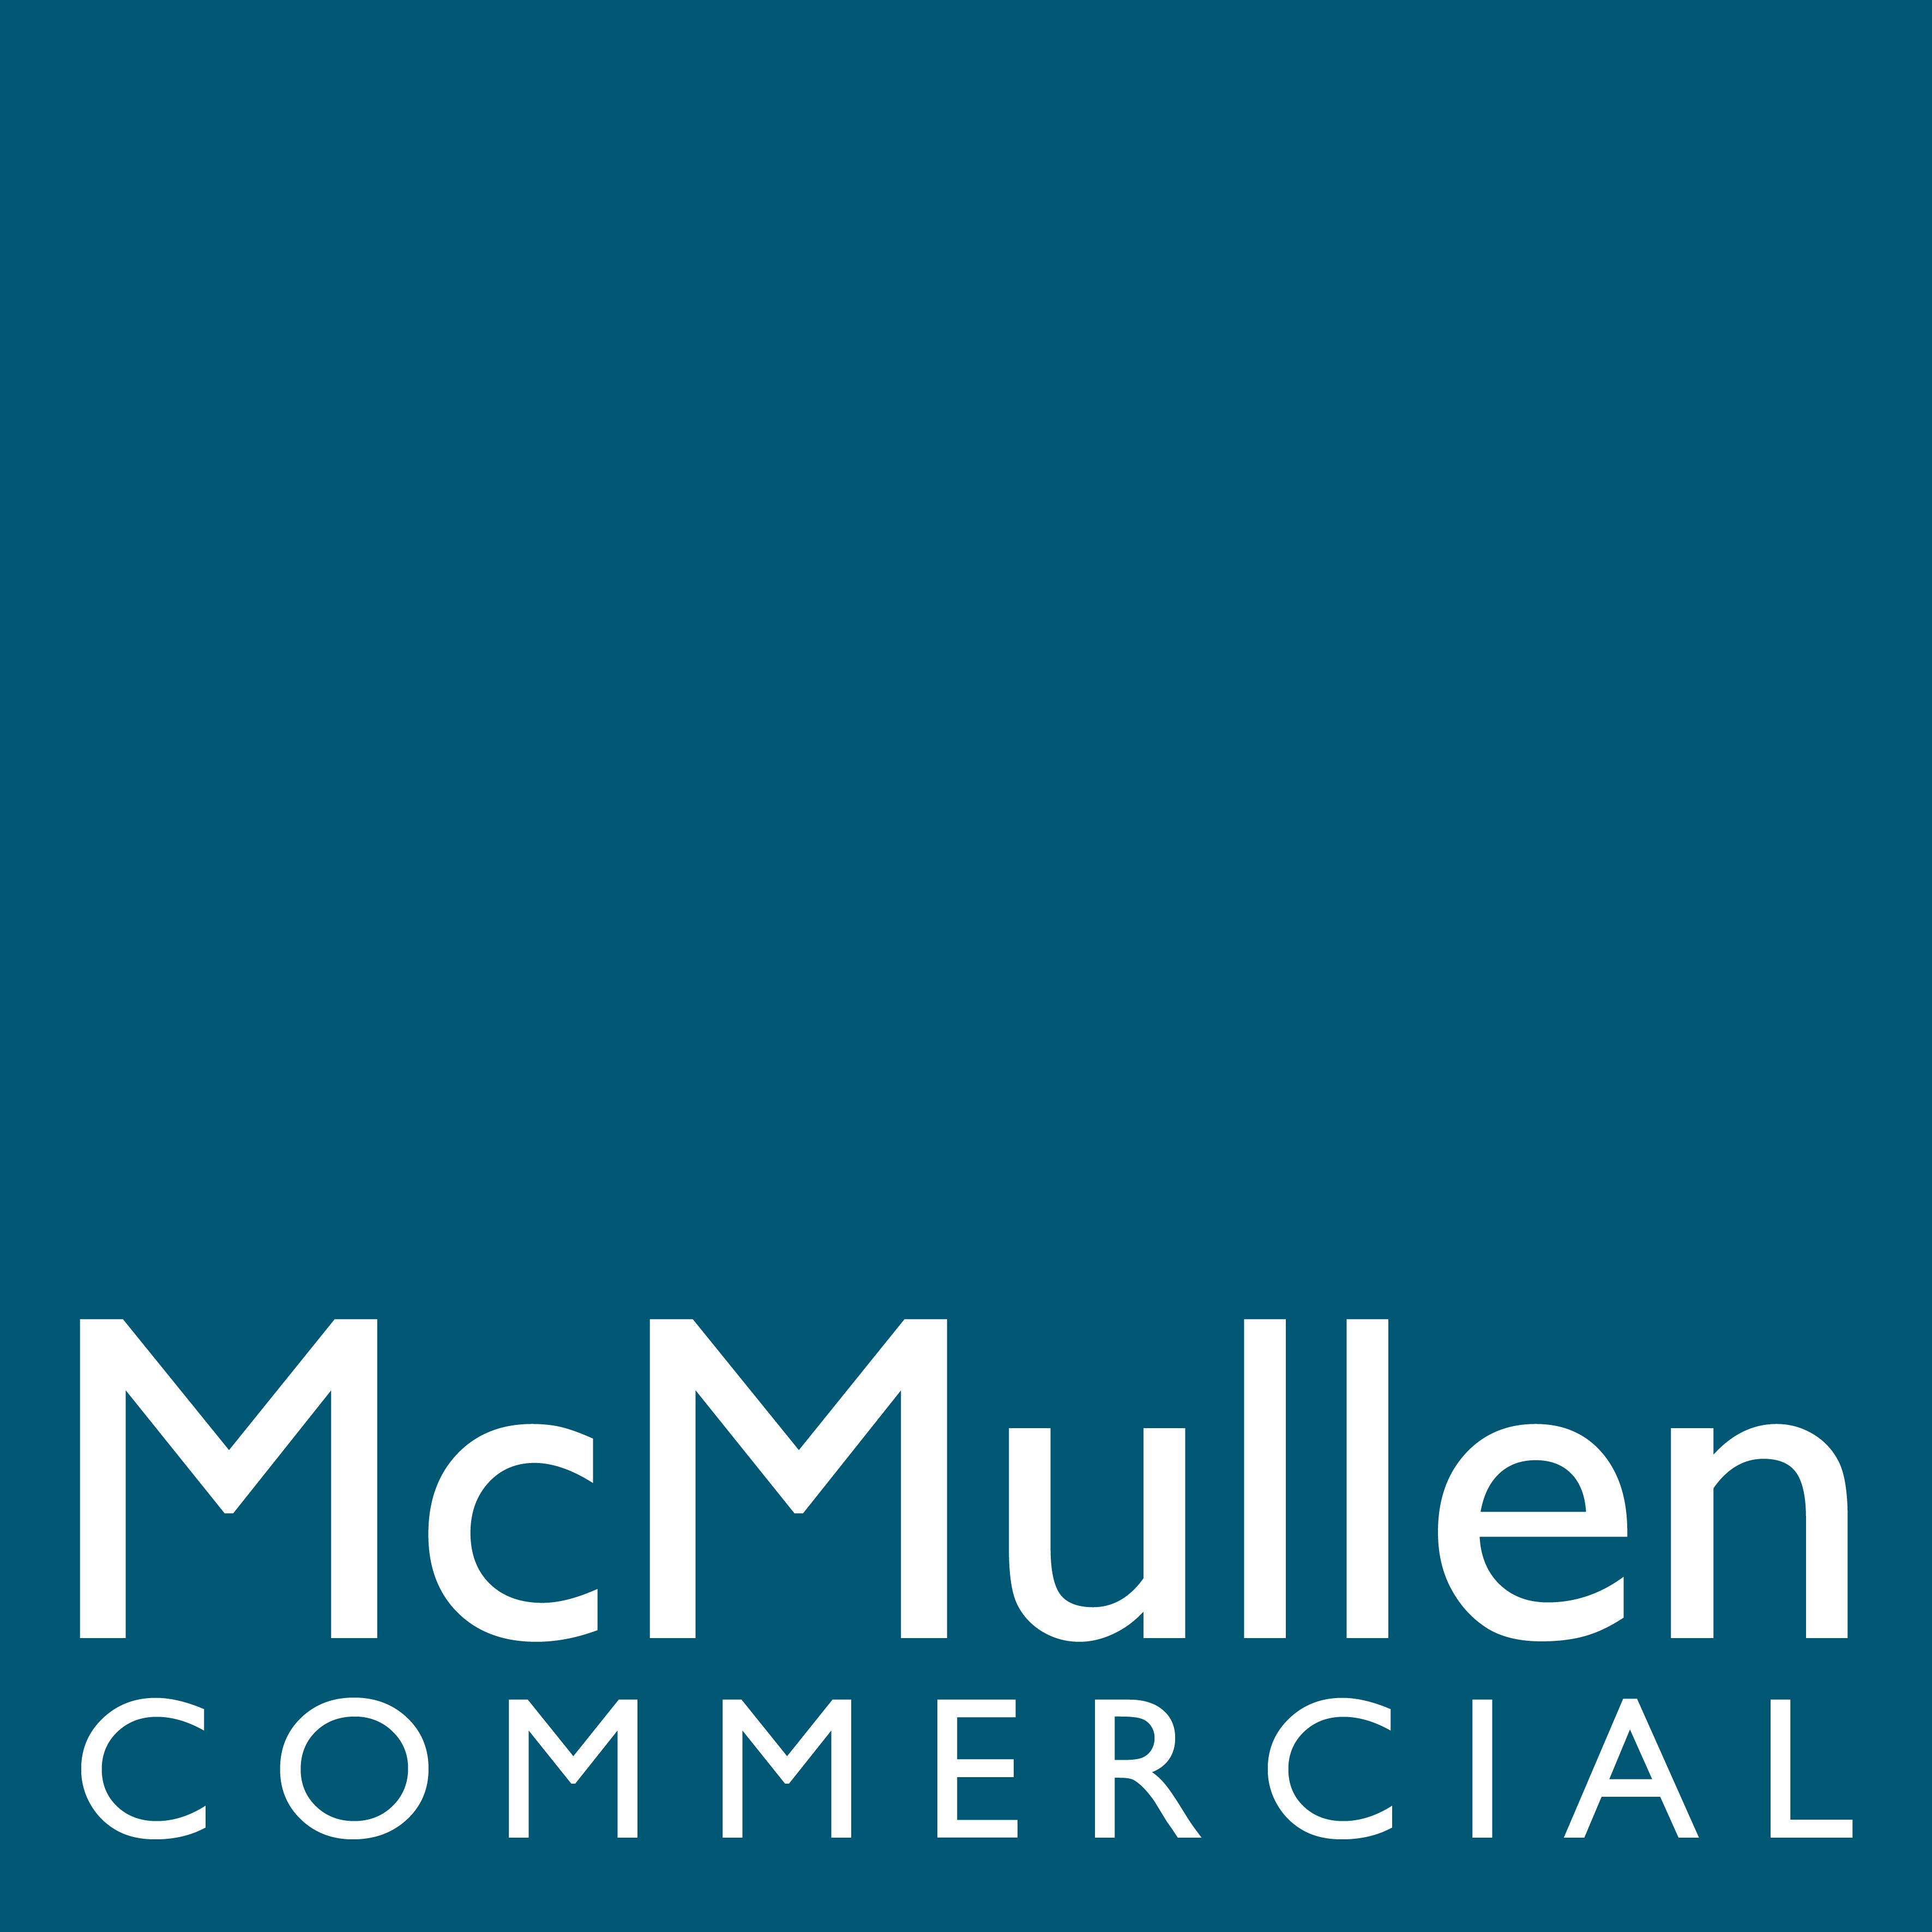 McMullen Commercial